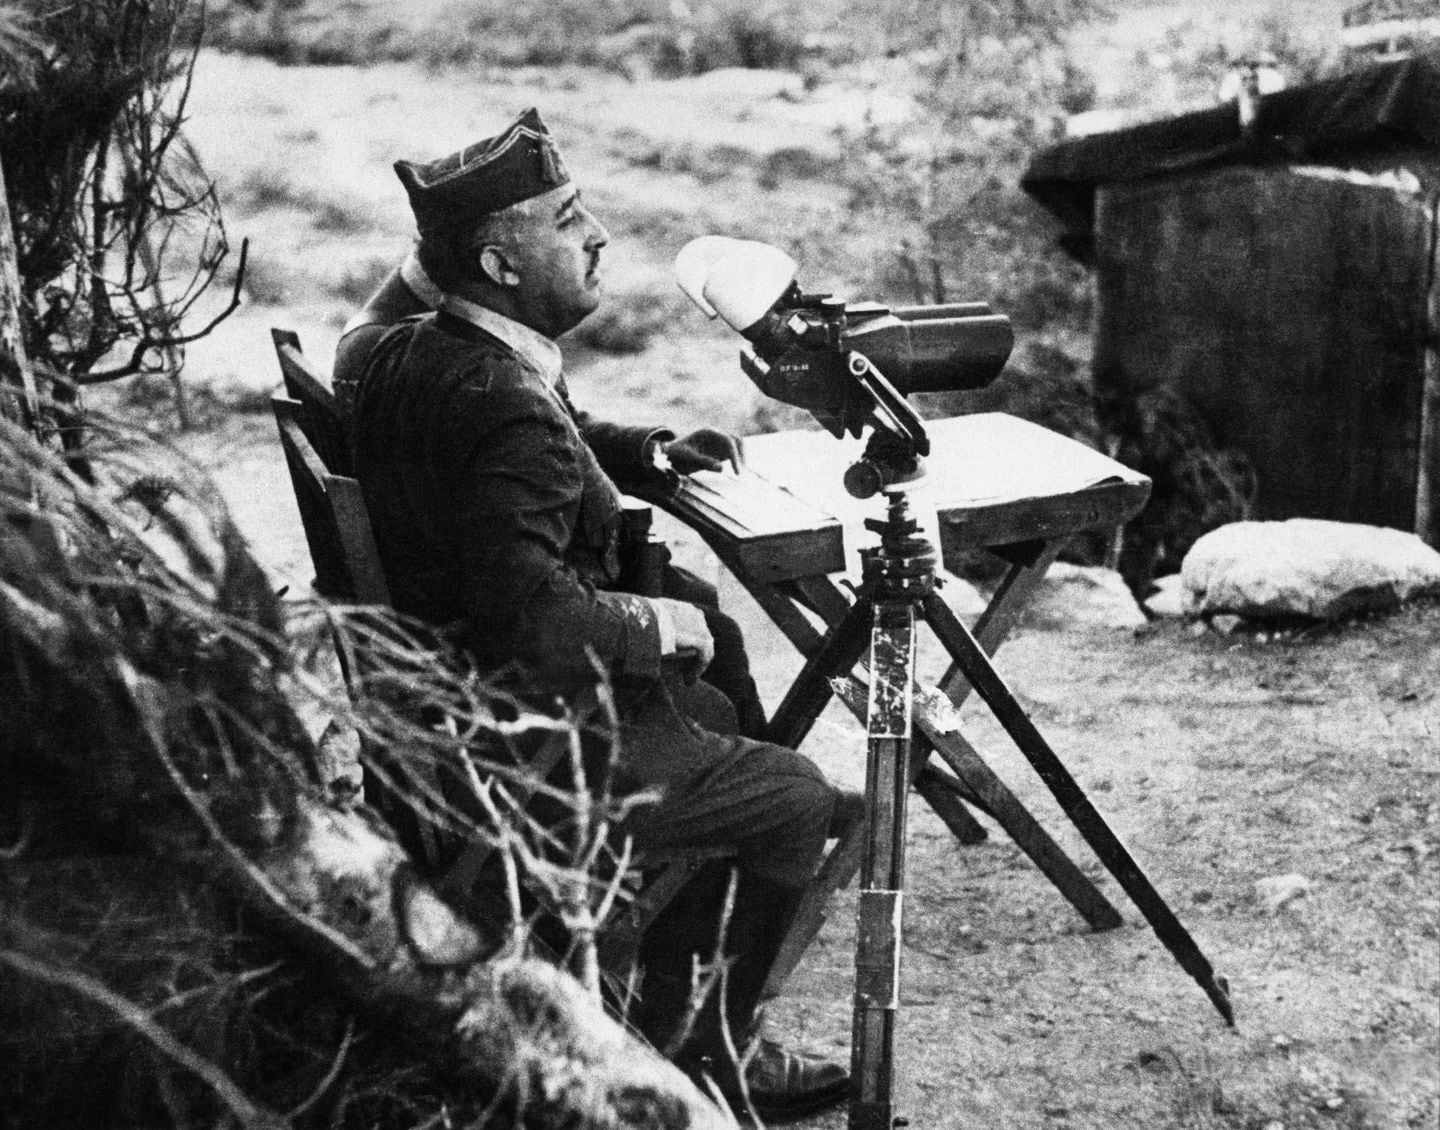 This undated photo shows Gen. Francisco Franco watching the front during the Spanish Civil War. (AFP/Getty Images)